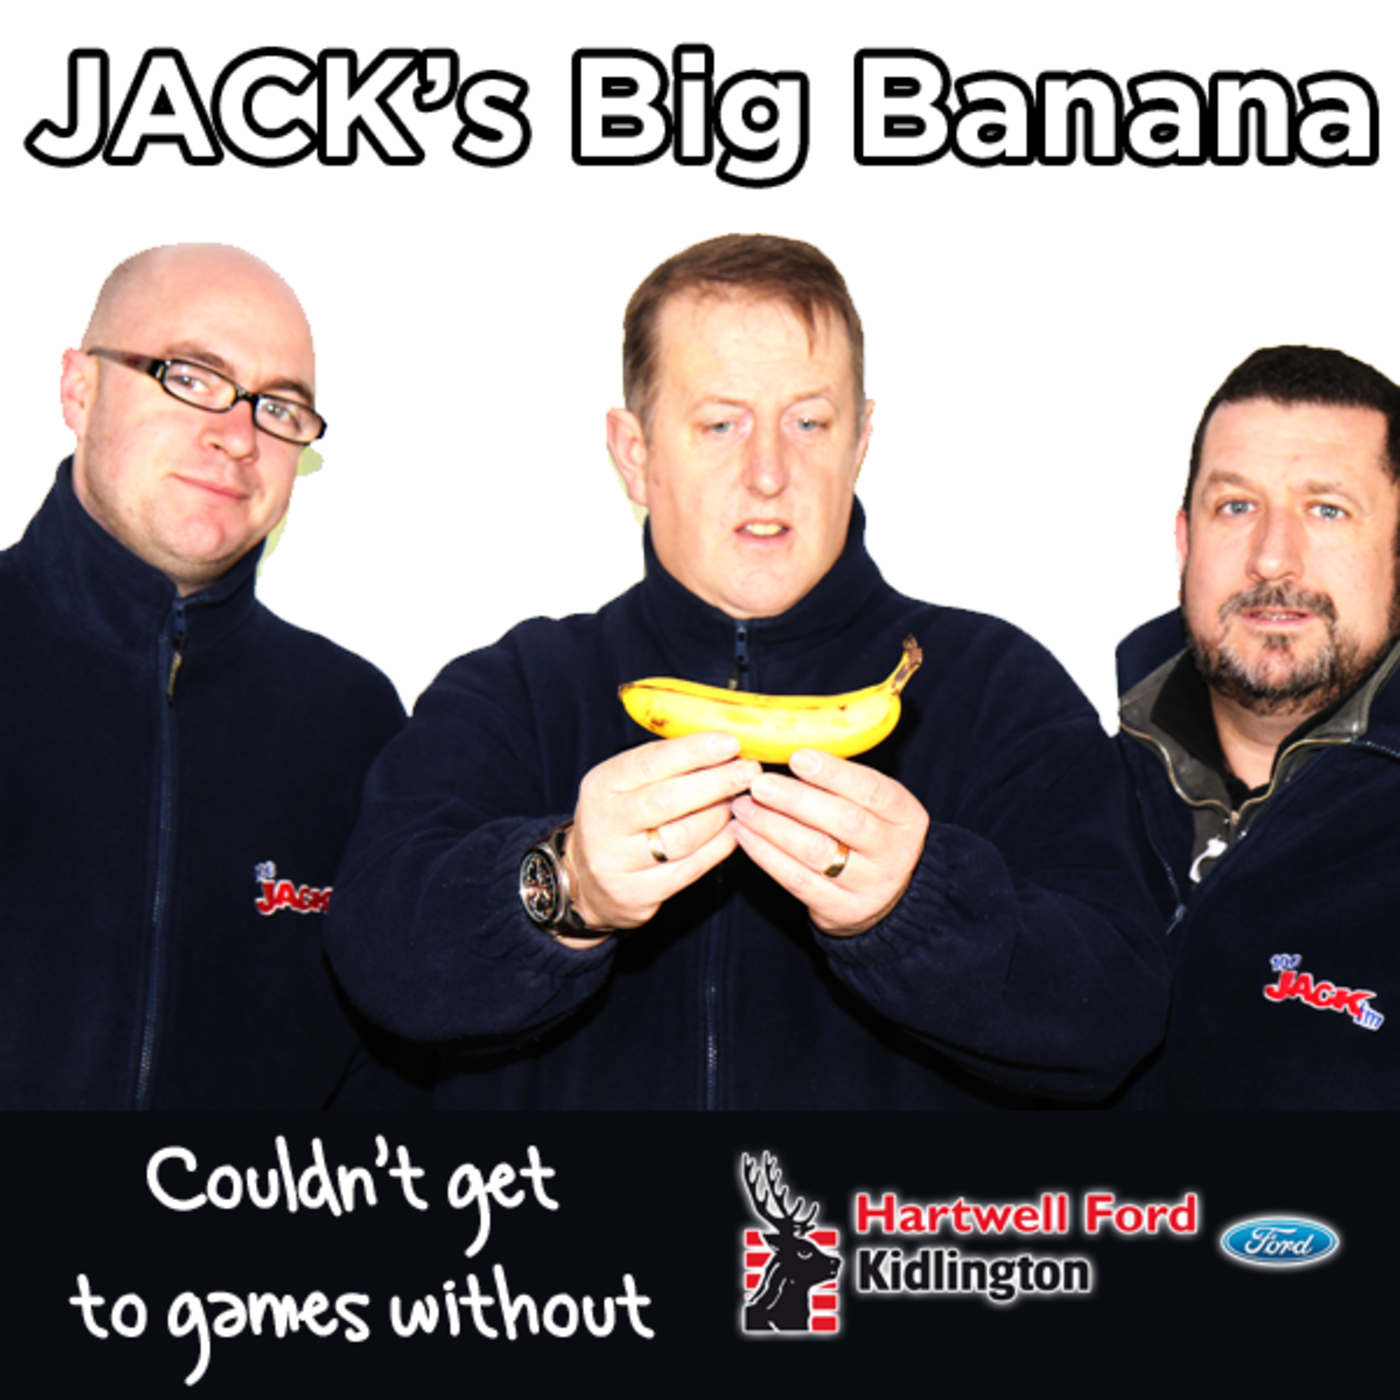 JACK's Big Banana - The Podcasts